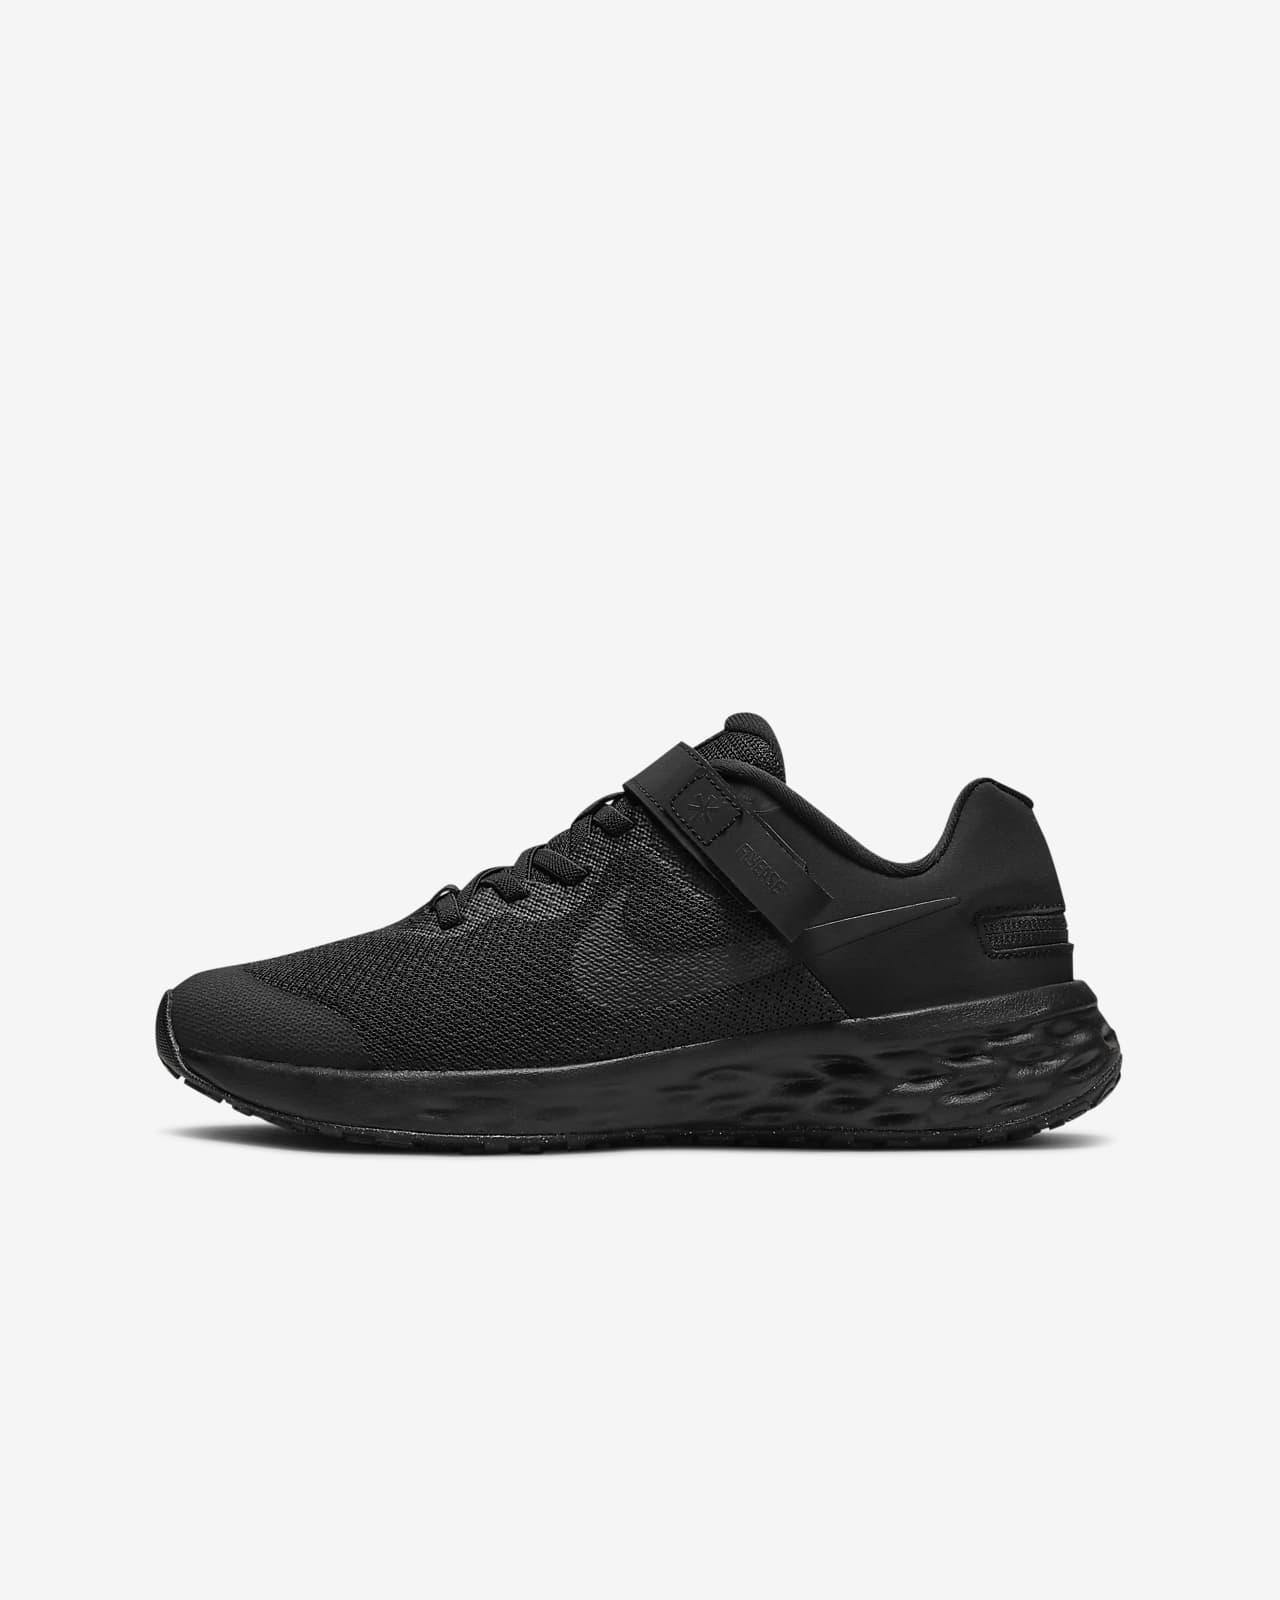 Nike Revolution 6 FlyEase Big Kids' Easy On/Off Road Running Shoes